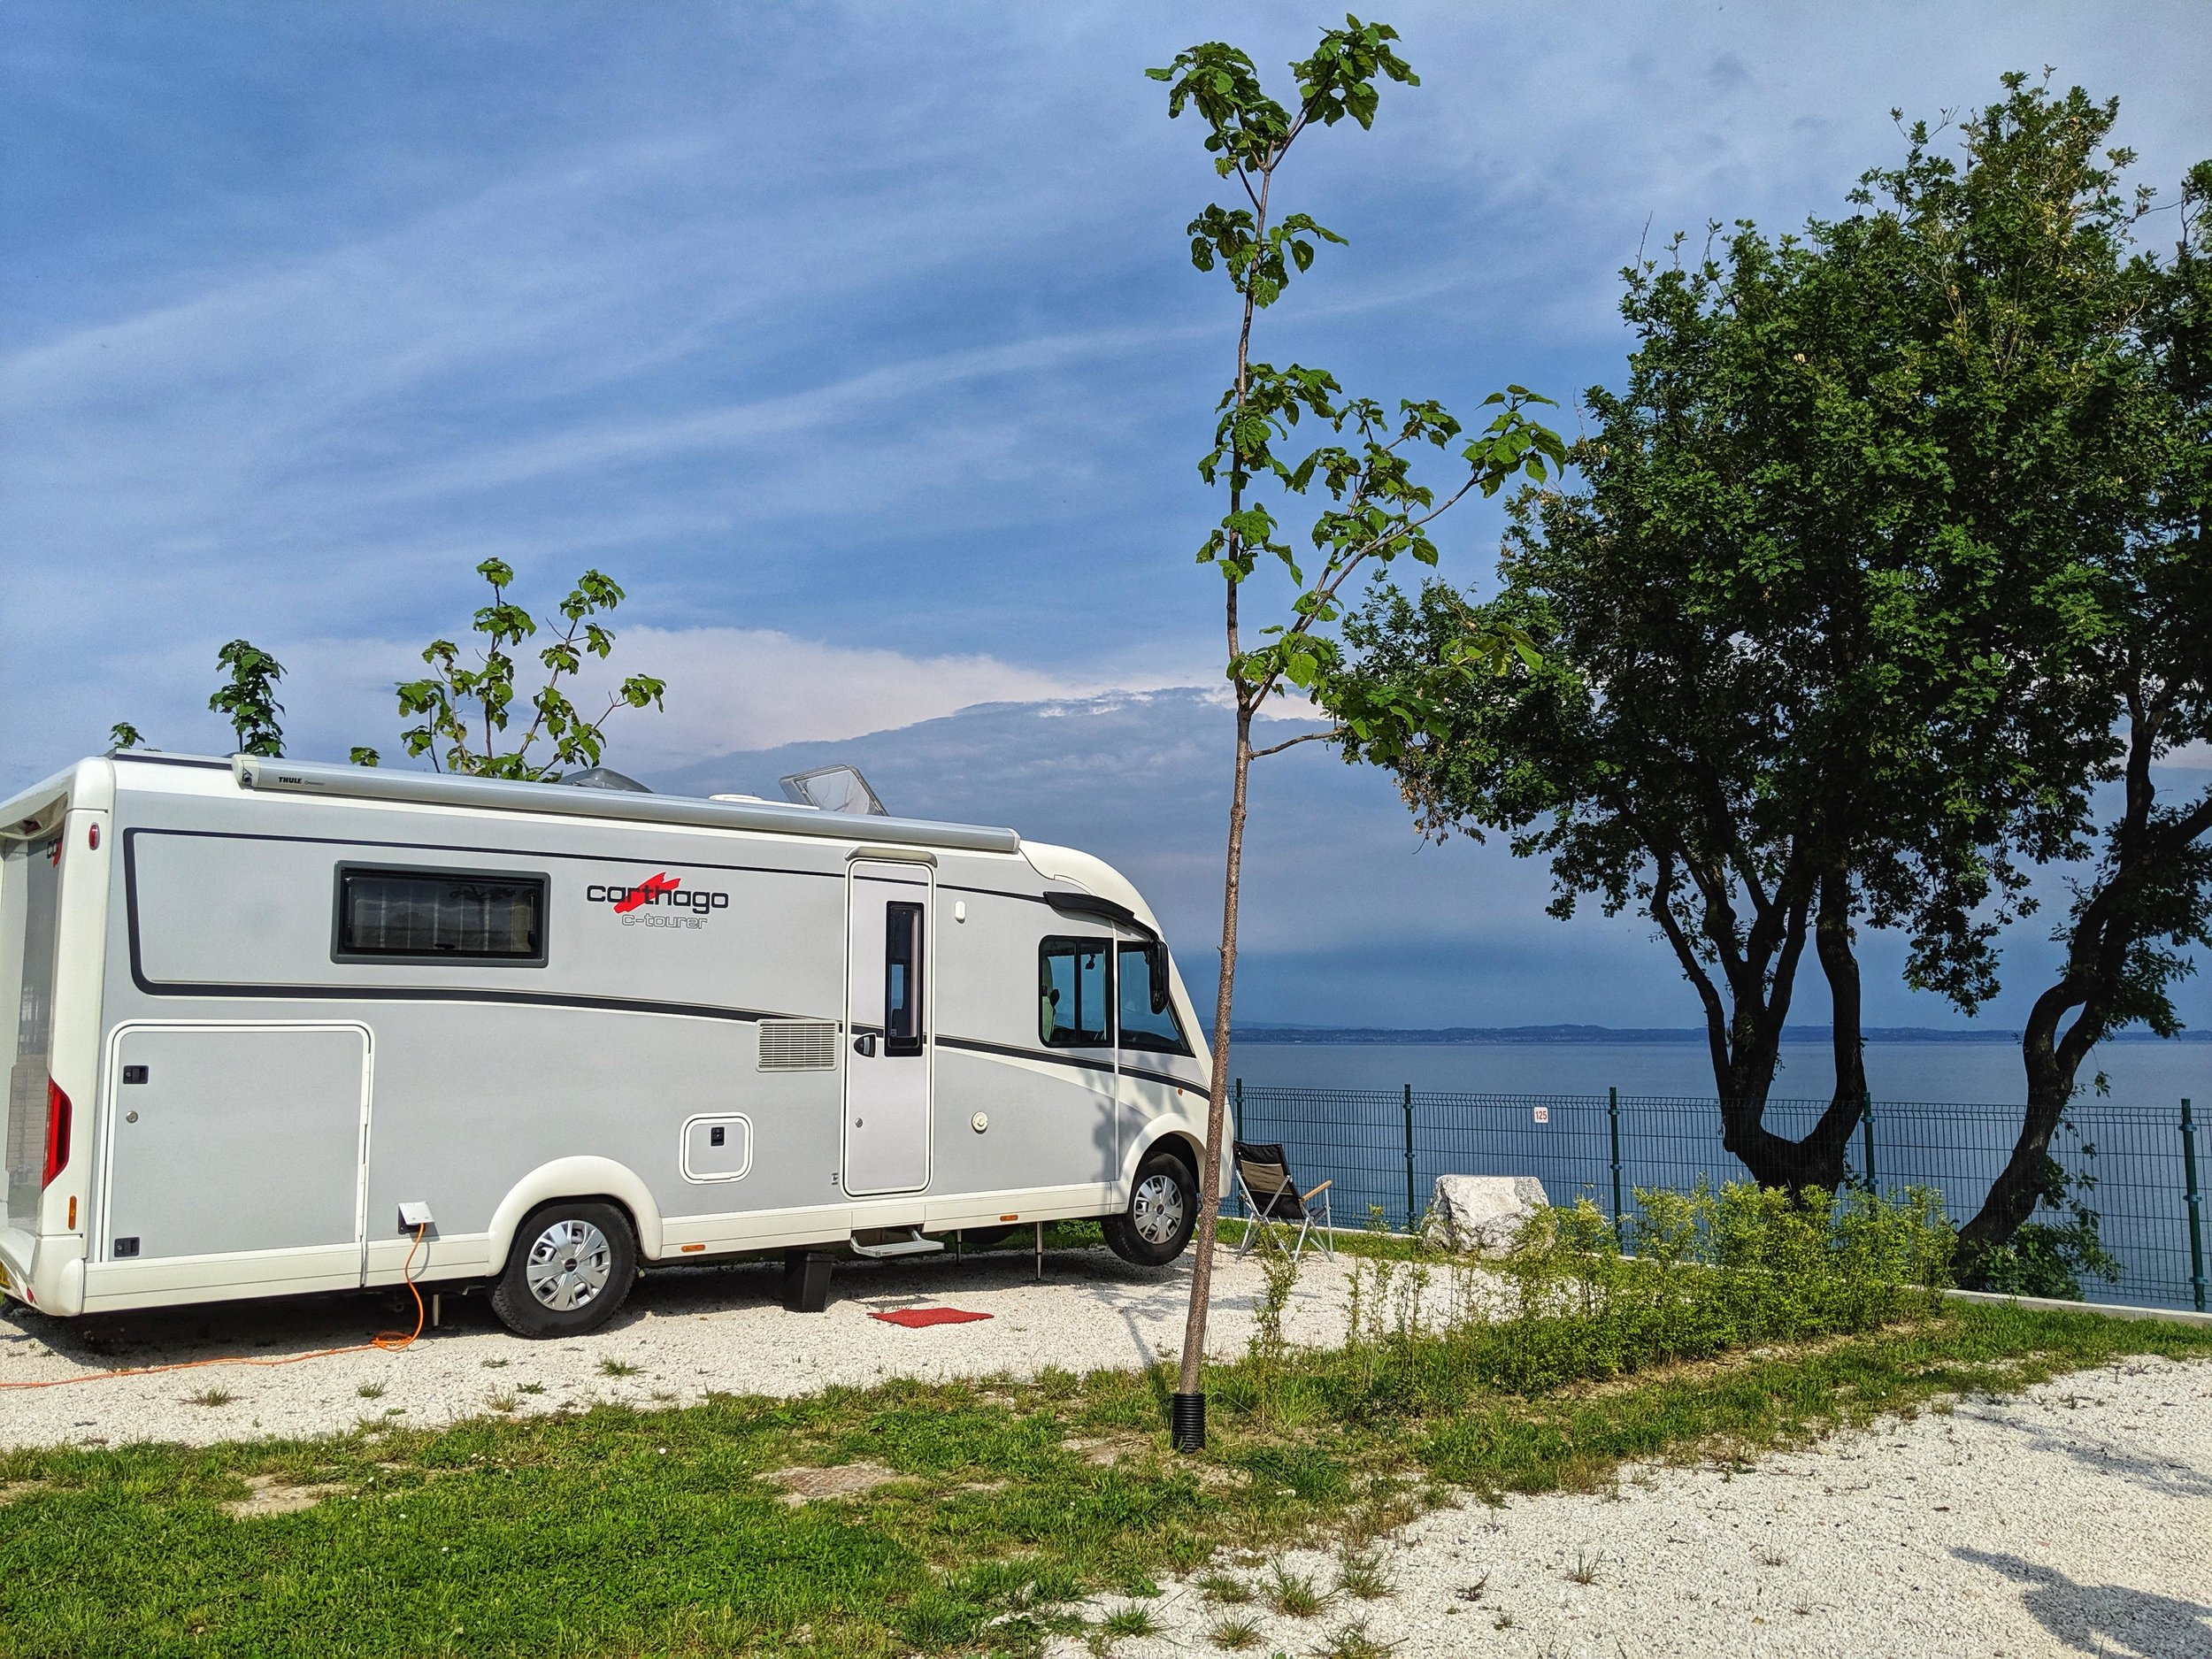 Another gorgeous lakeside location over Lake Garda